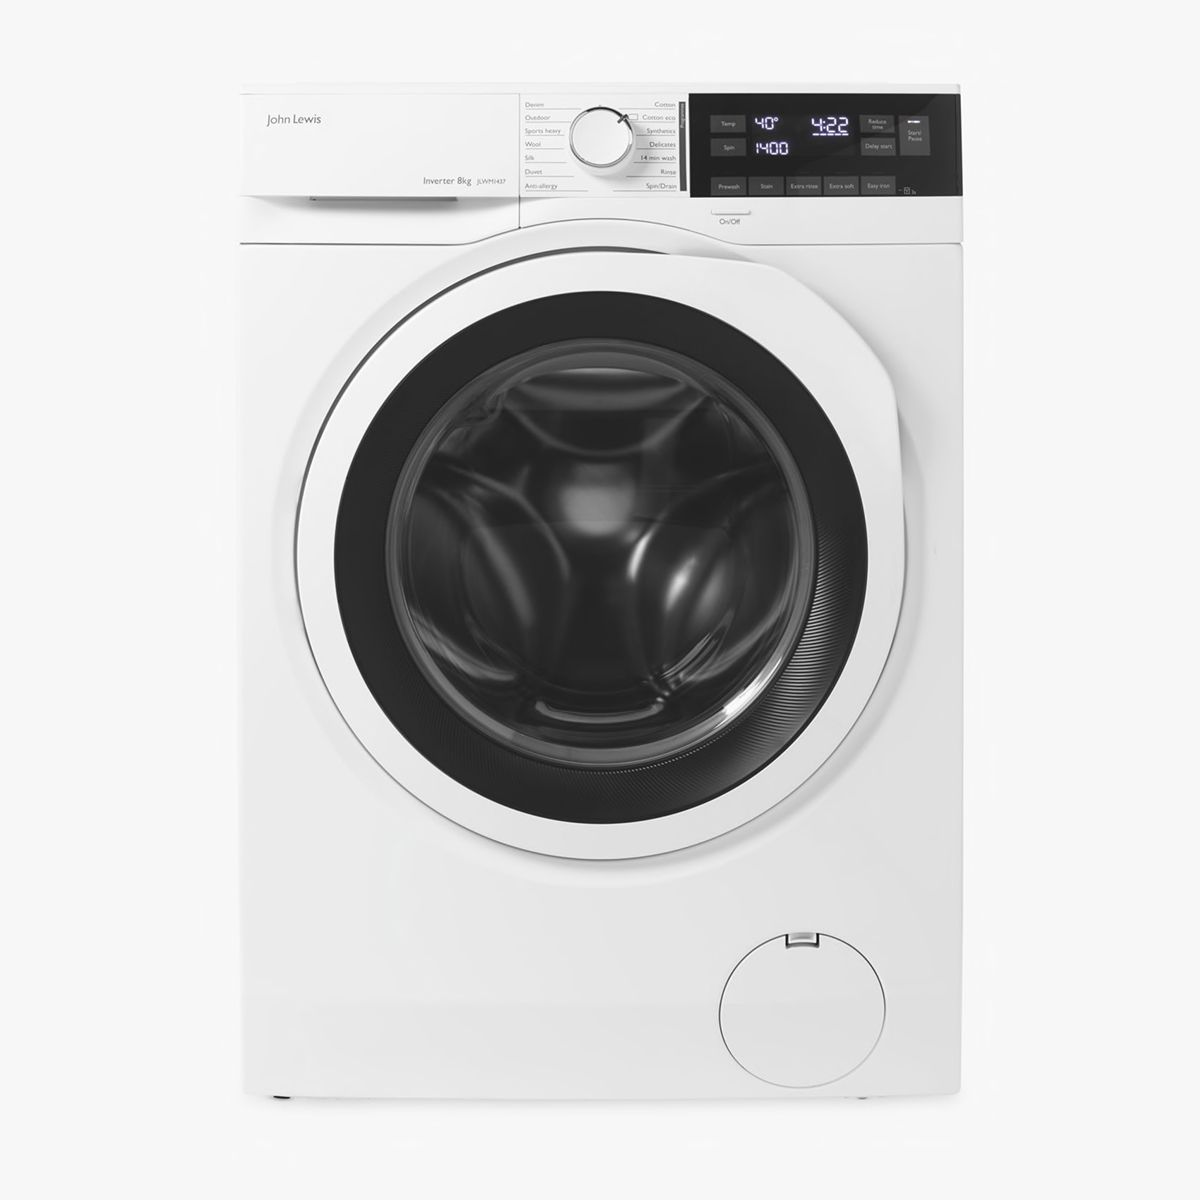 Laundry Appliance Offers